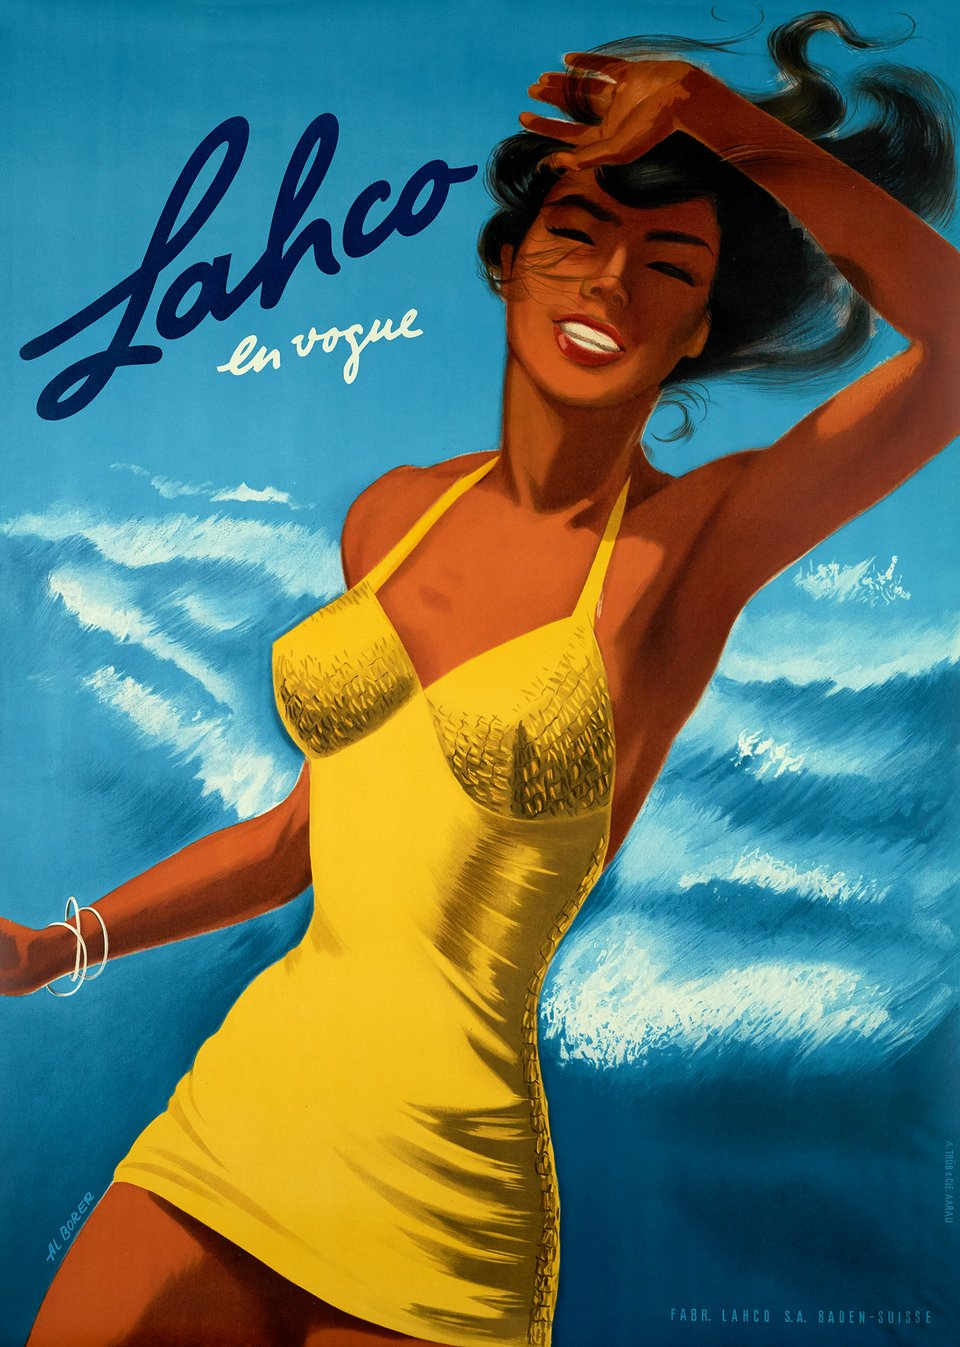 Lahco, En vogue – Affiche ancienne – AIbert BORER – 1950